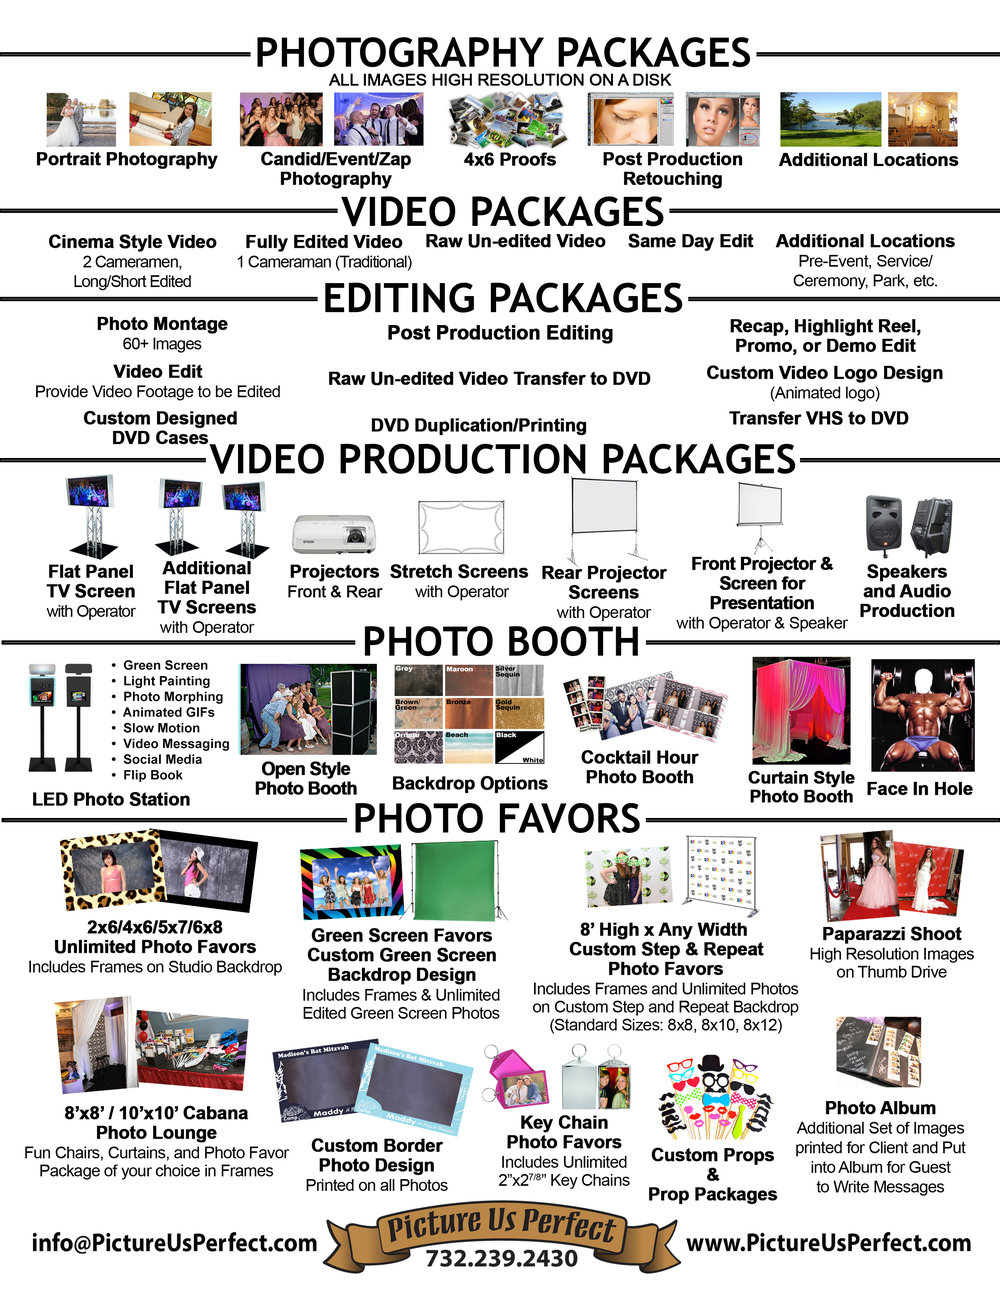 002a- front page catalog.jpg